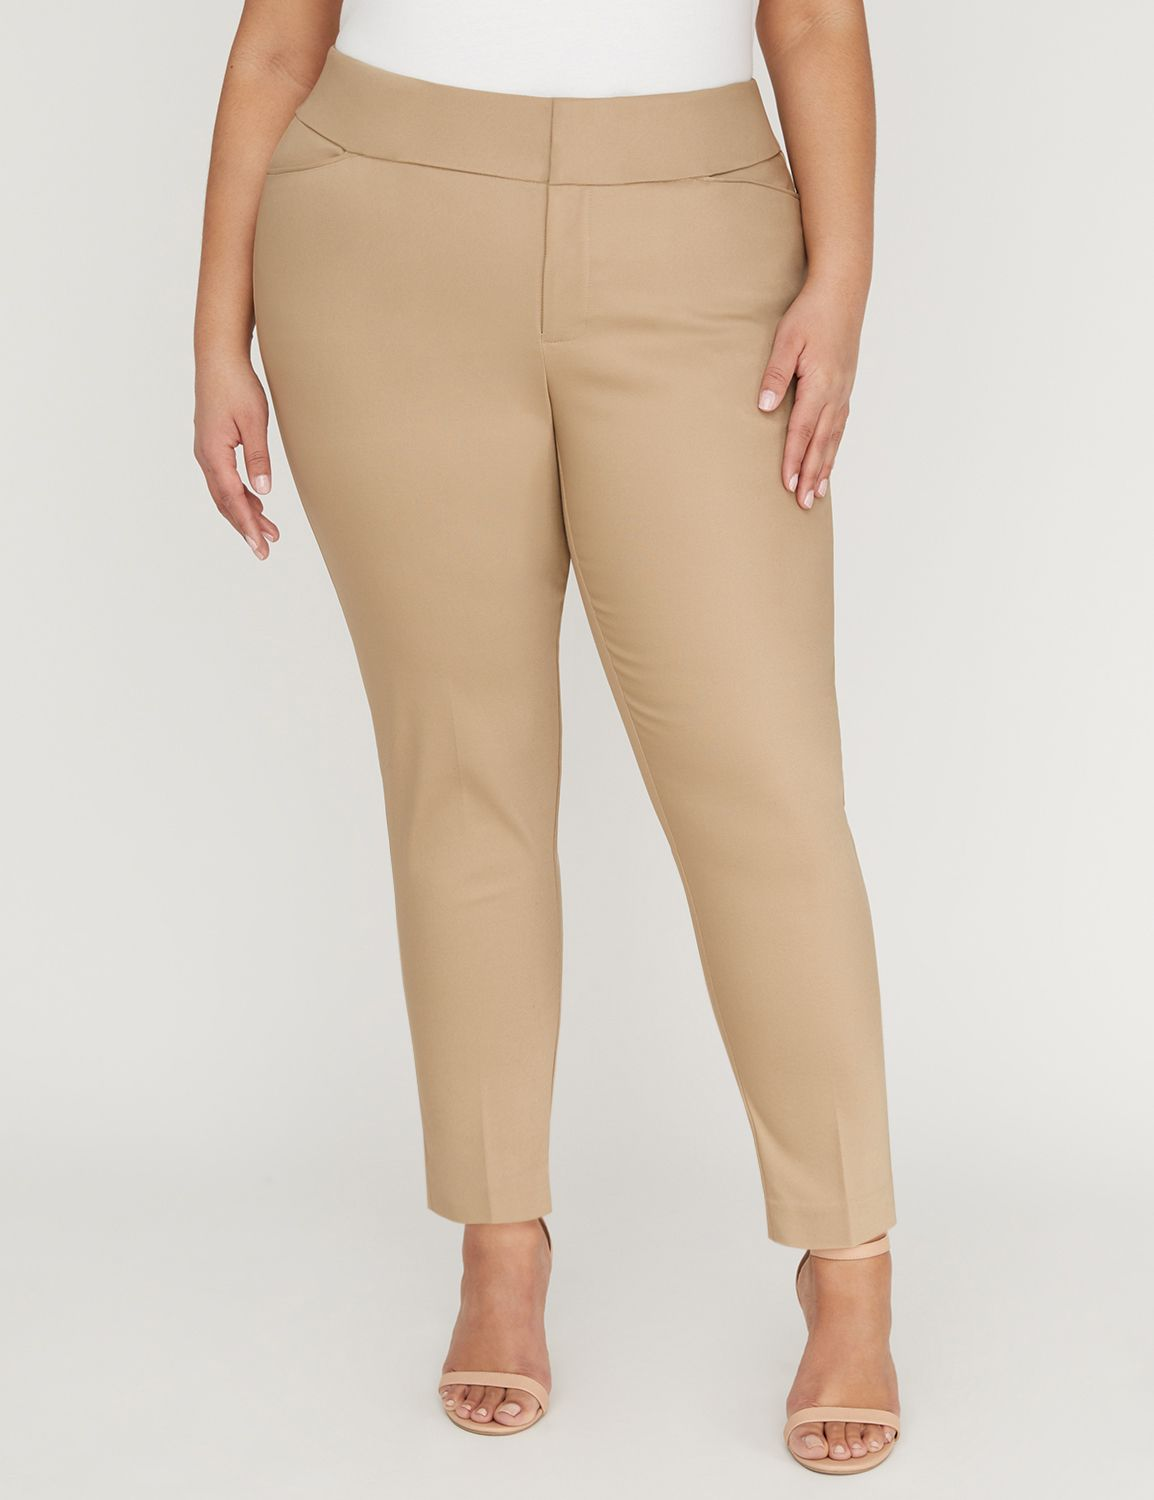 Updated Modern Stretch Ankle Pant 1087775 MODERN STRETCH WIDE WAISTBA MP-300097569